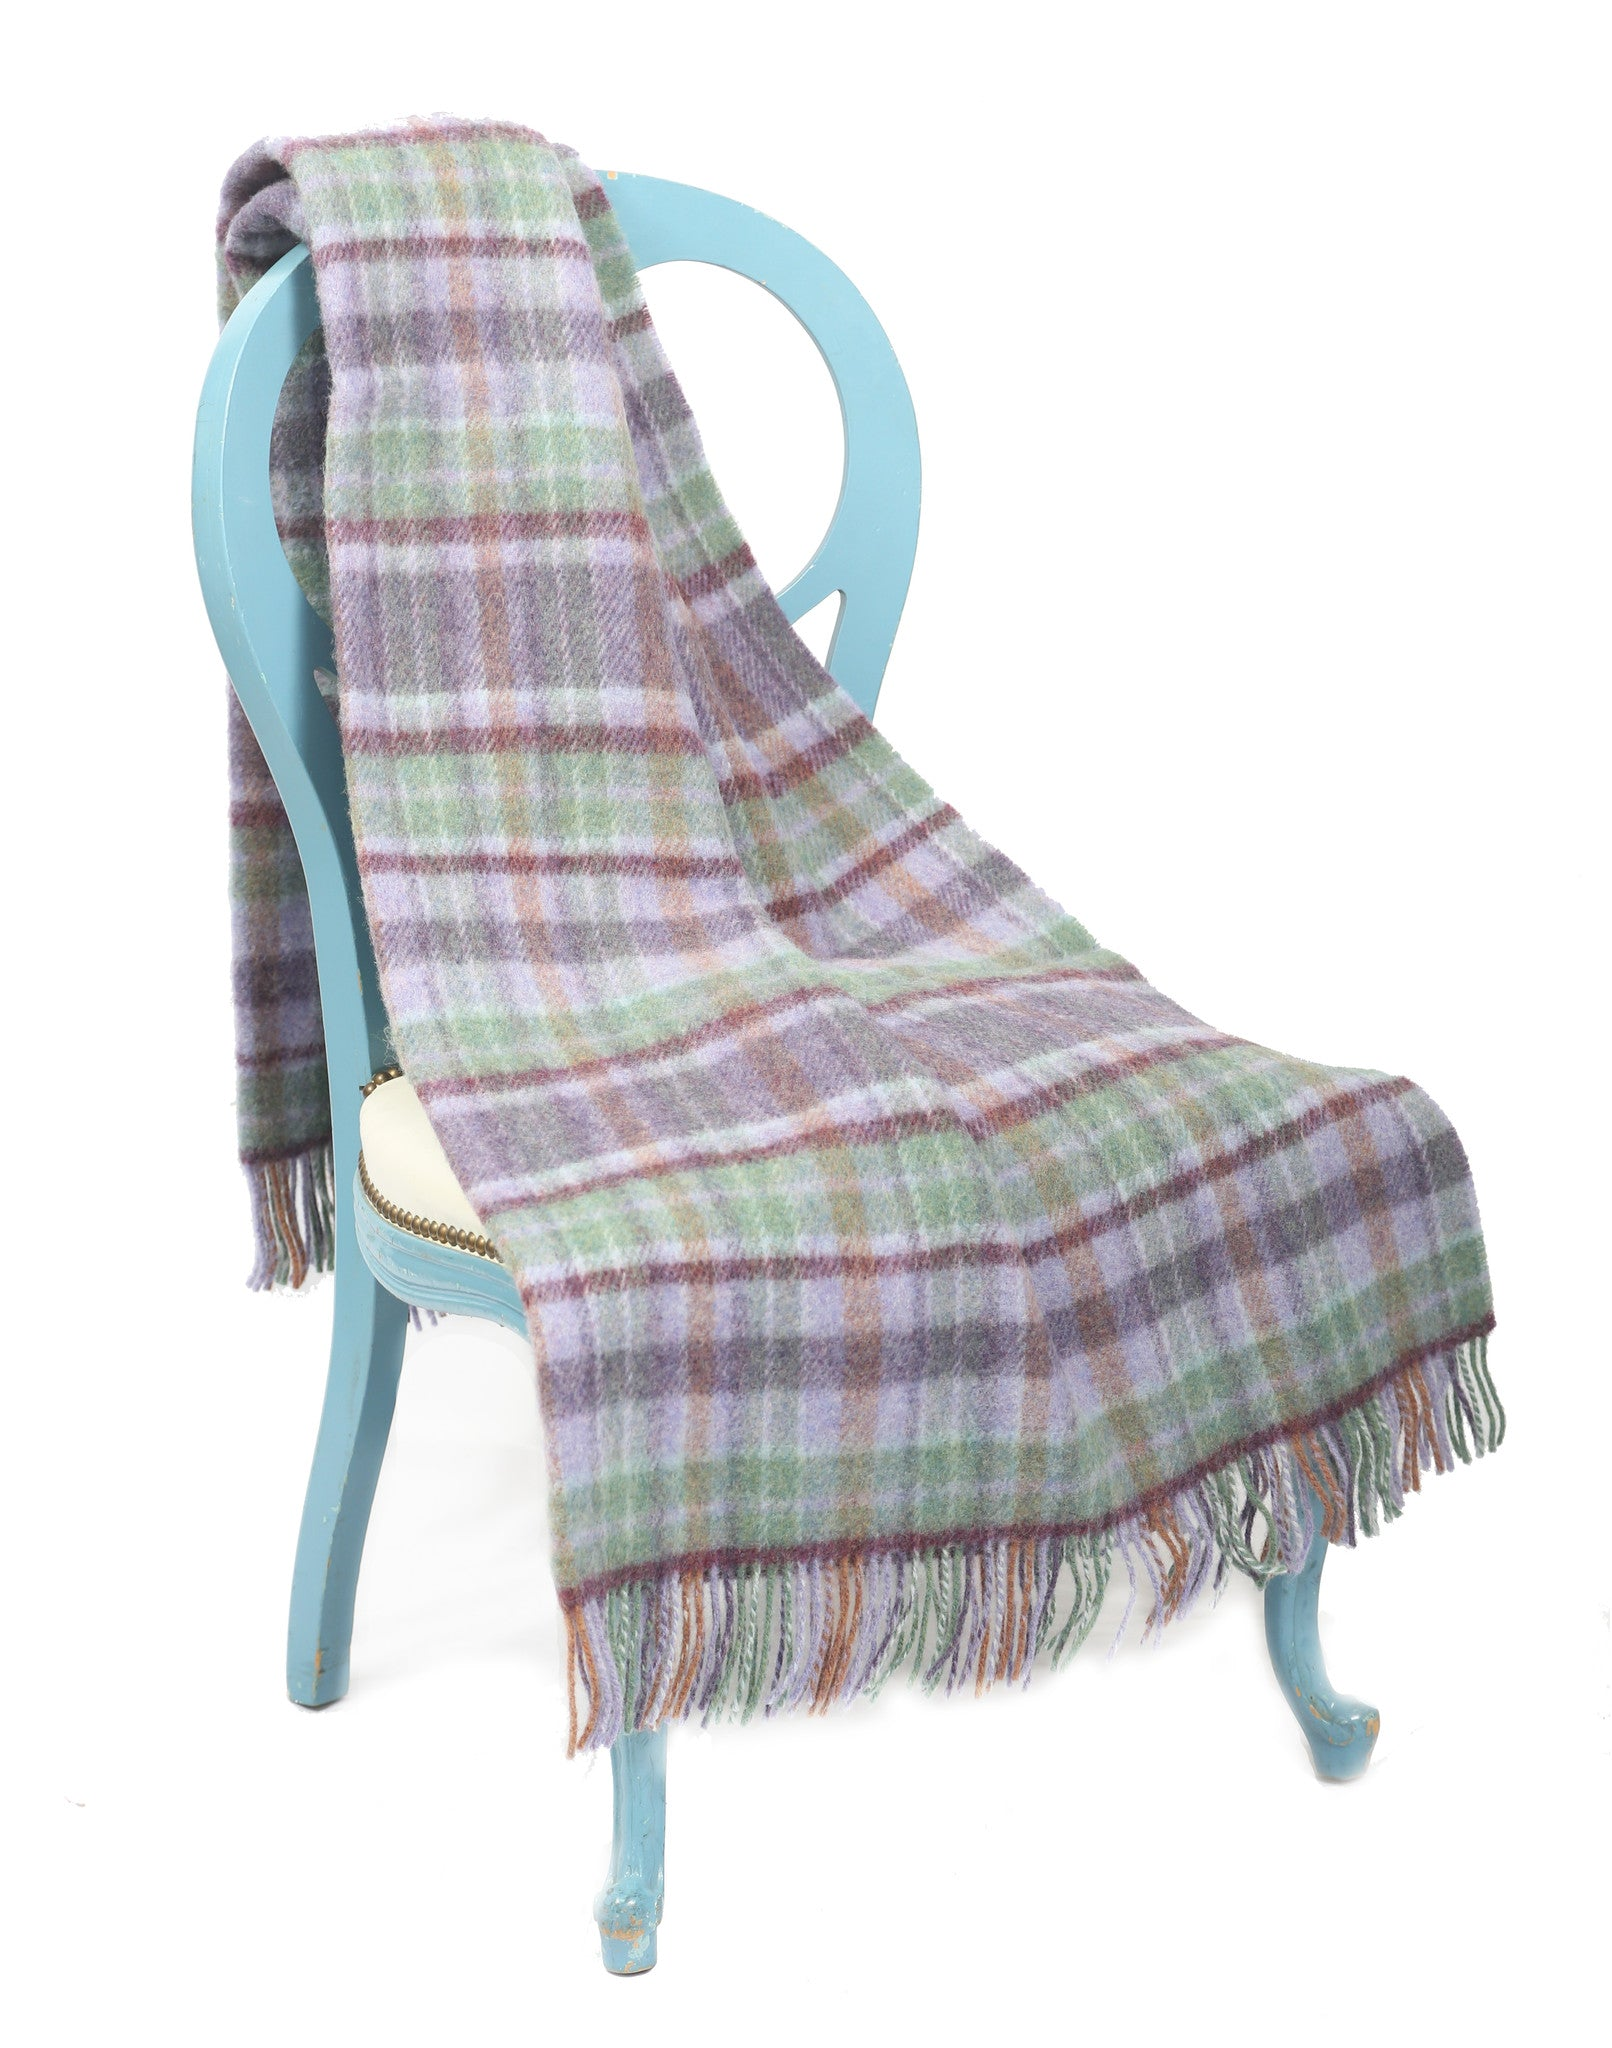 Large Wool Throw Blanket / Lavender Multi - Carleton Varney